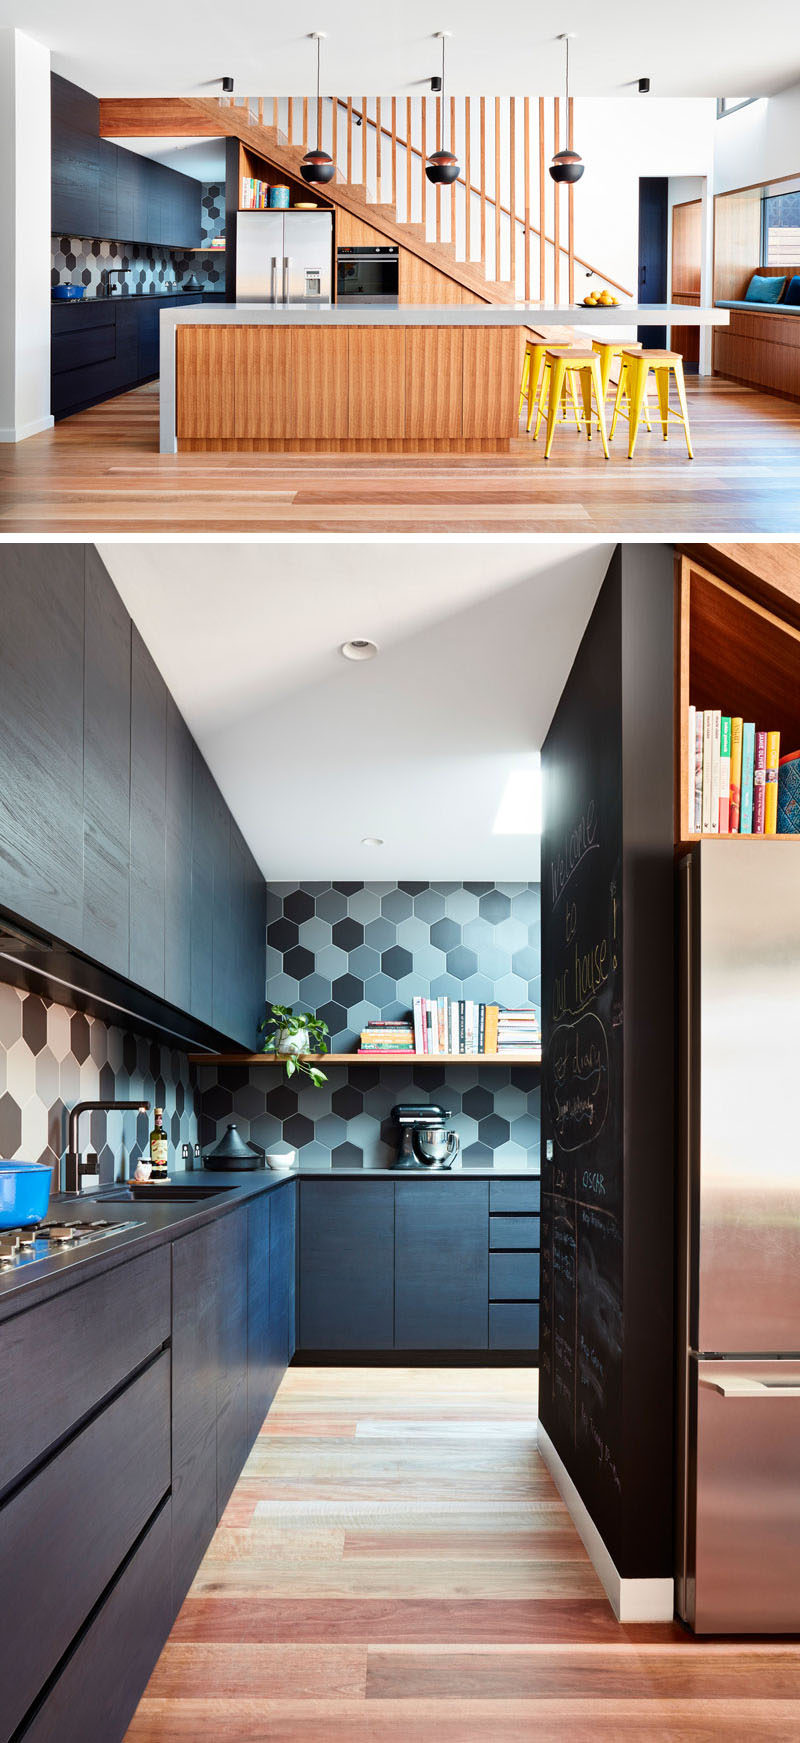 In this modern kitchen, a large island doubles as a dining area, while dark cabinets line the wall and wrap around behind the stairs. #ModernKitchen #KitchenIsland